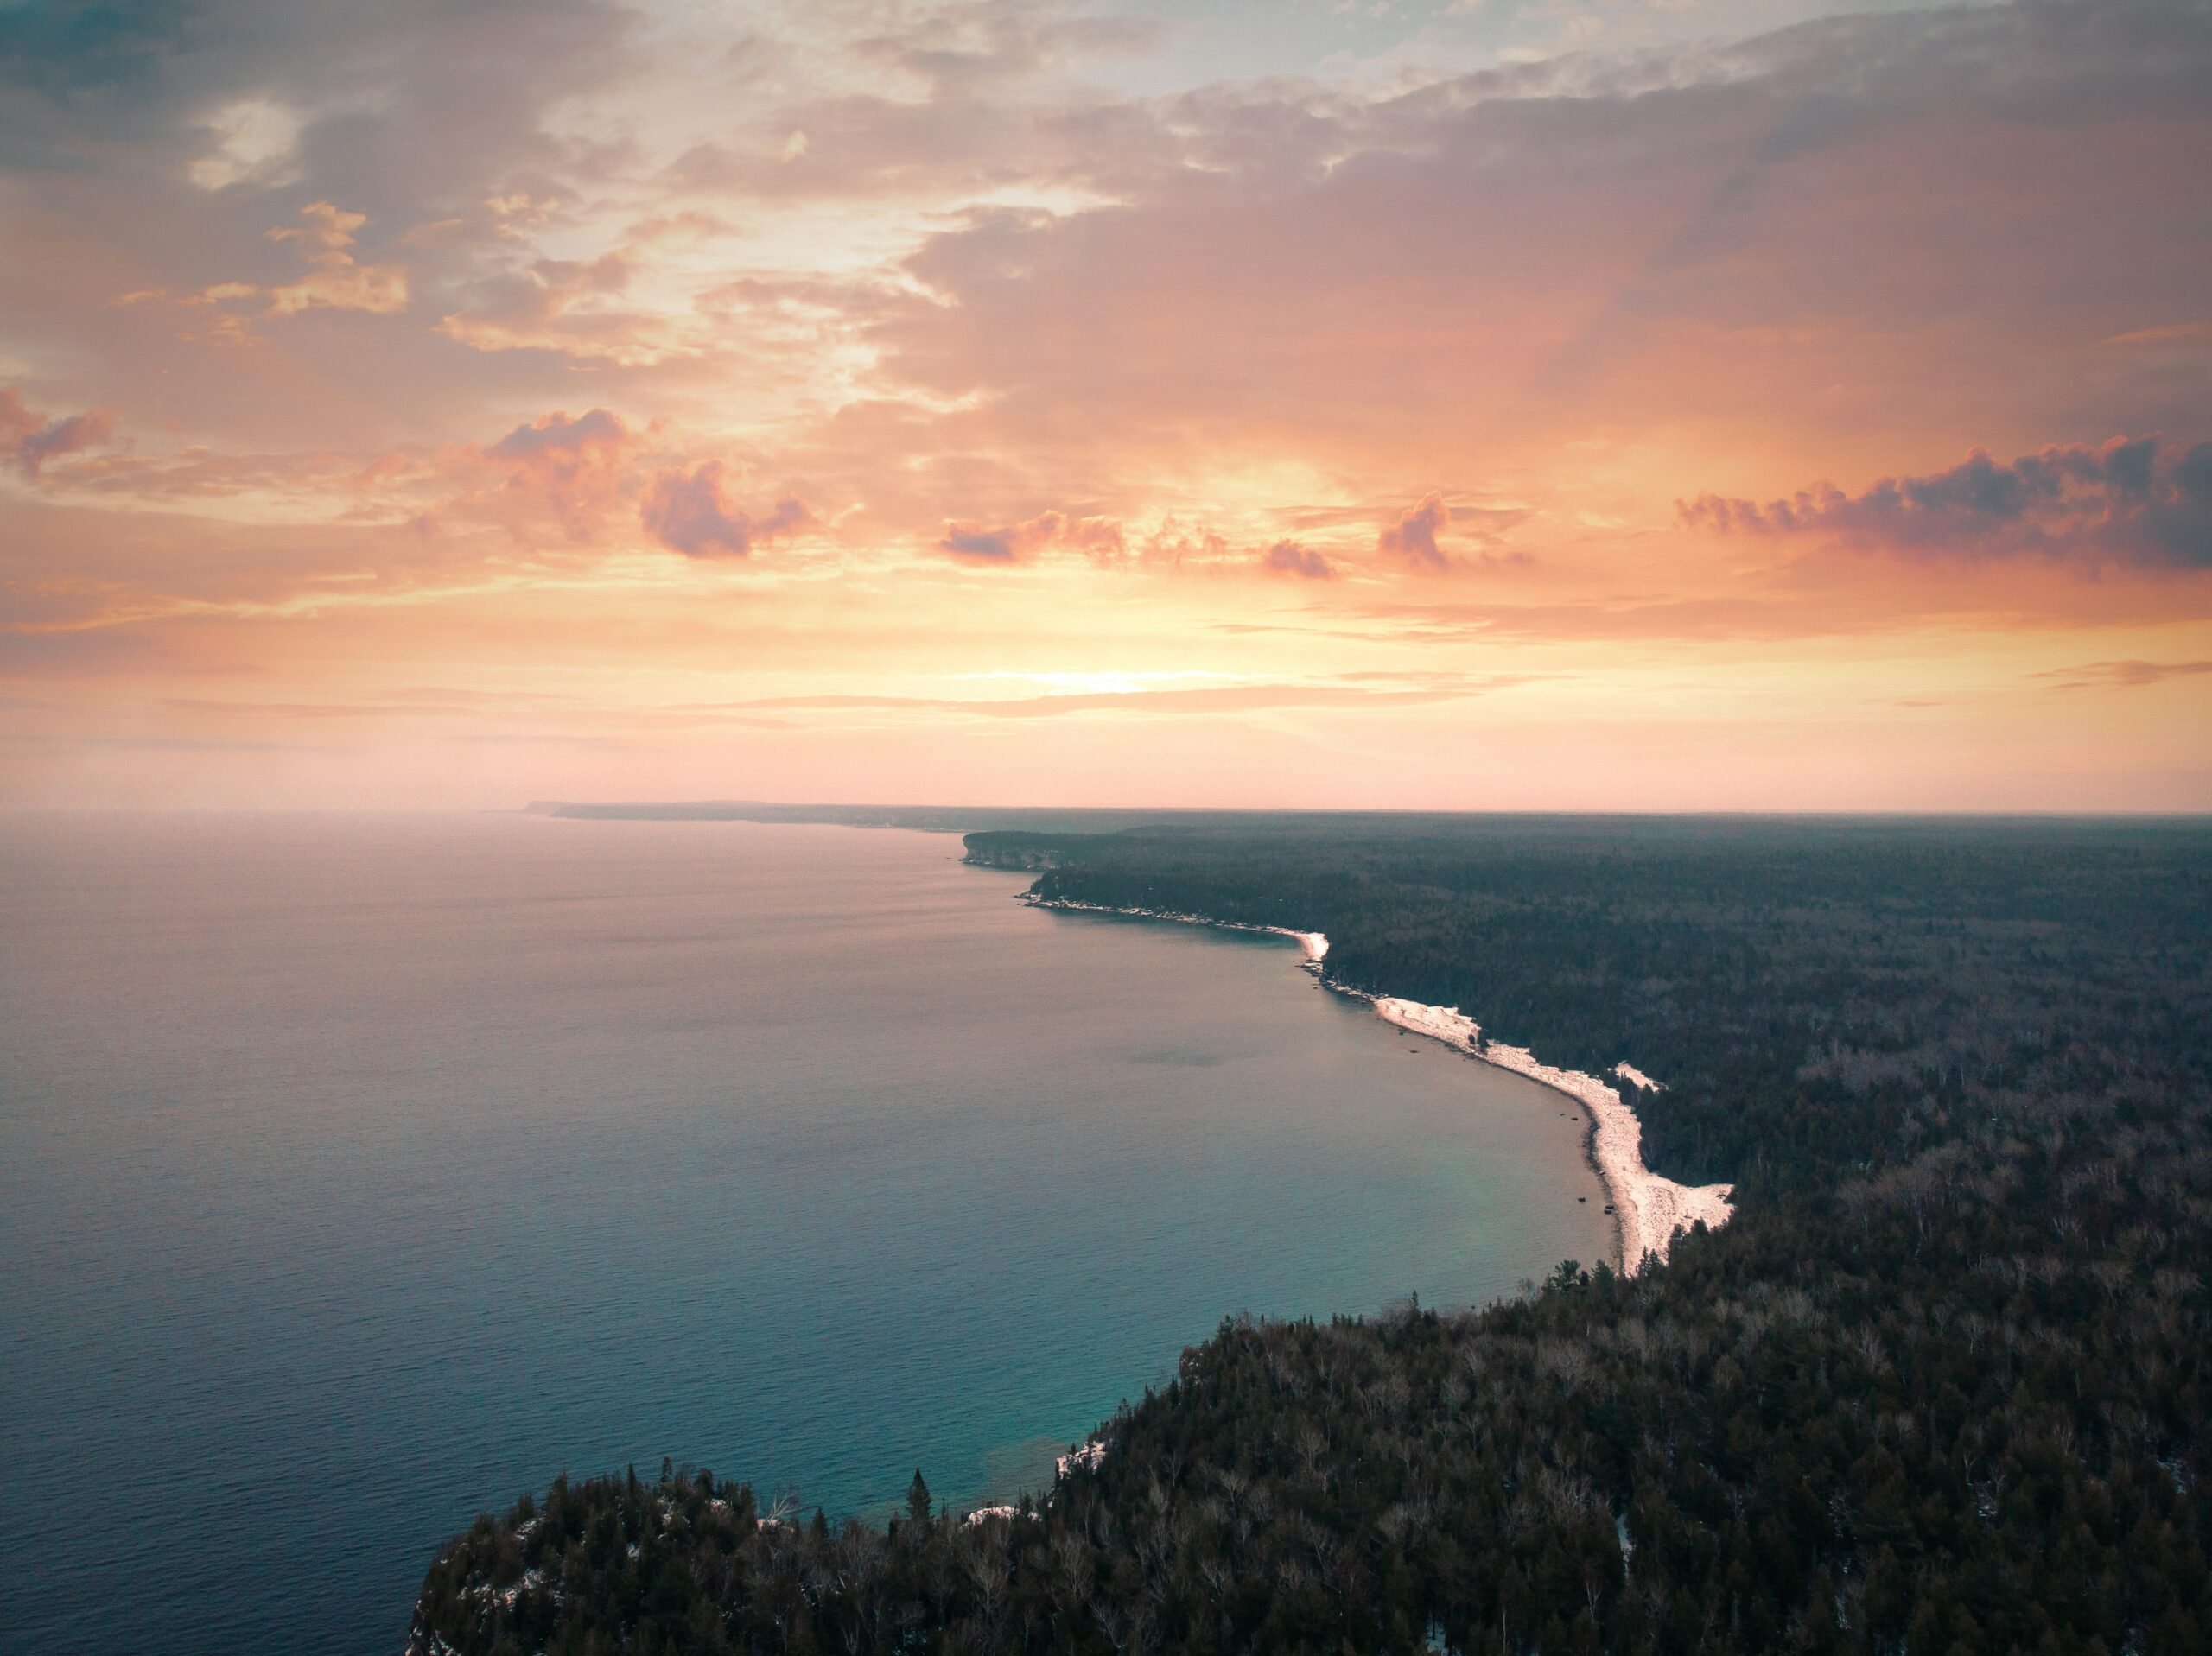 Ontario lake from above